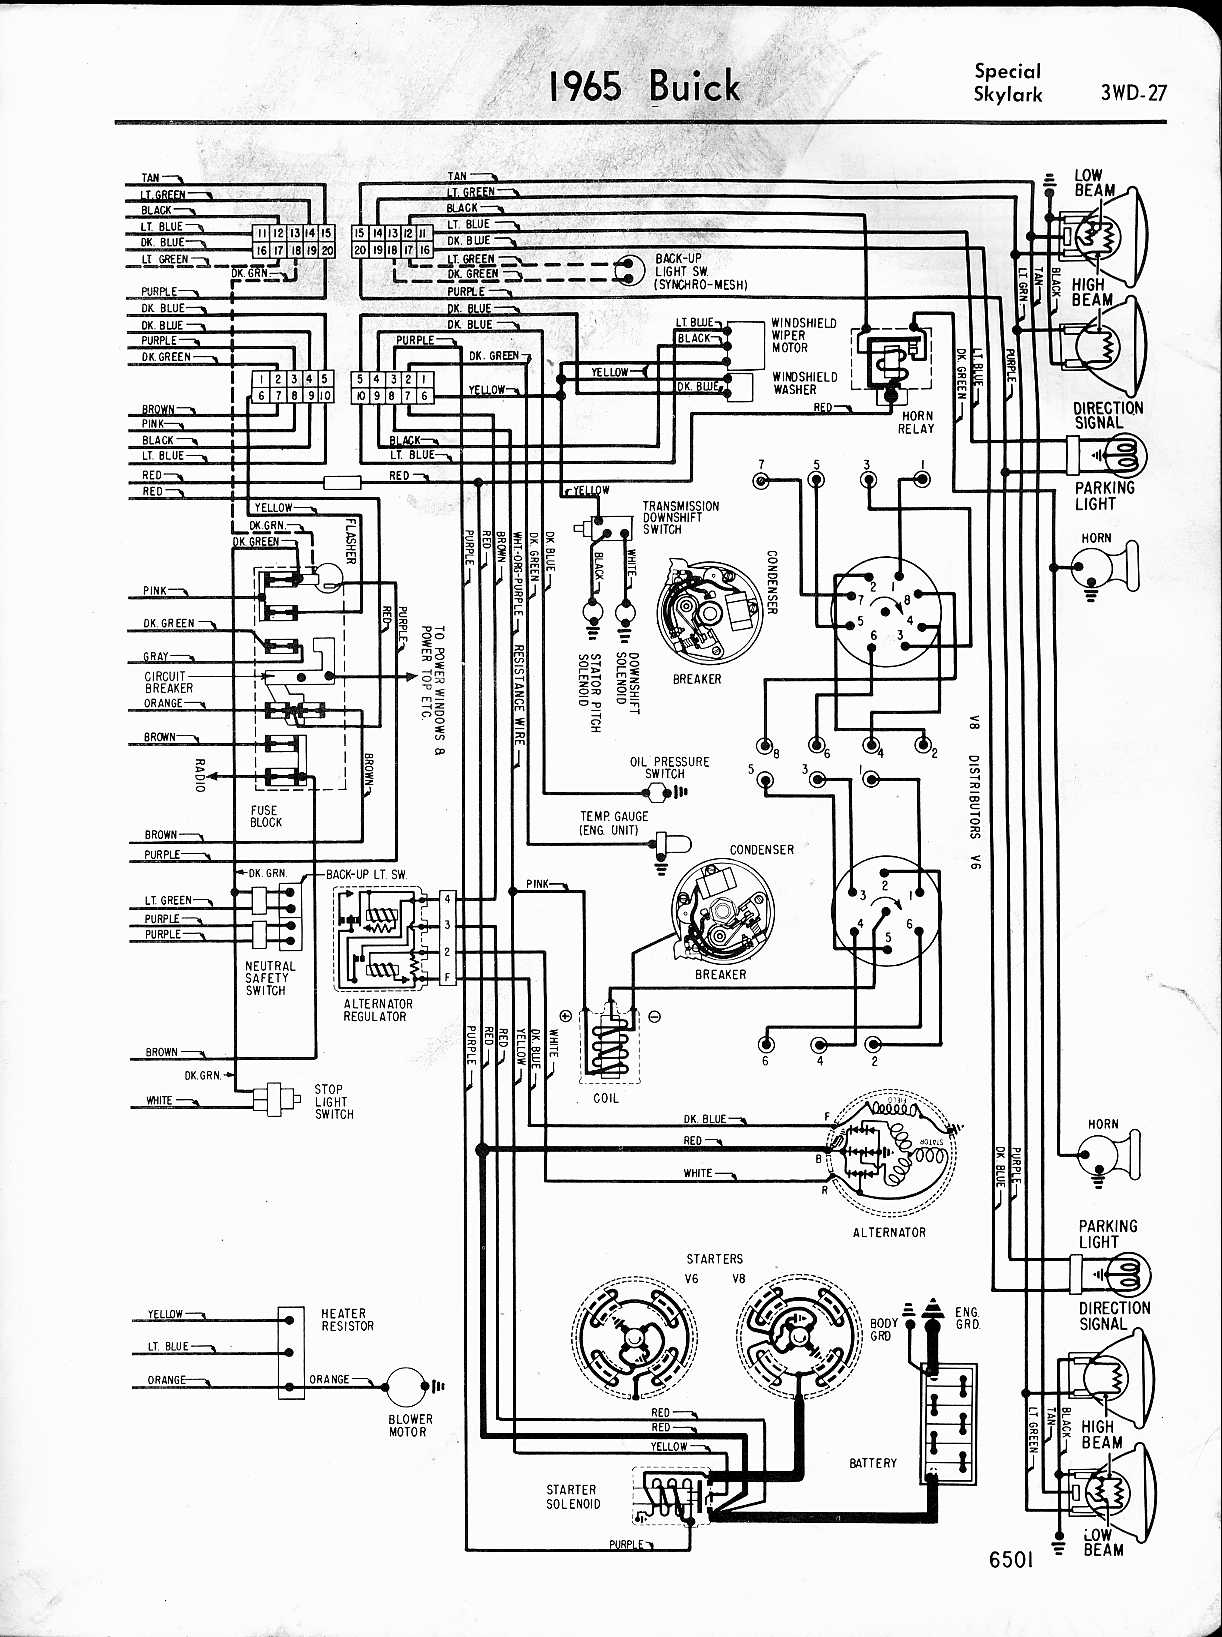 1965 buick skylark wiring diagram schematic wiring diagram u2022 rh cosmeticexpress co